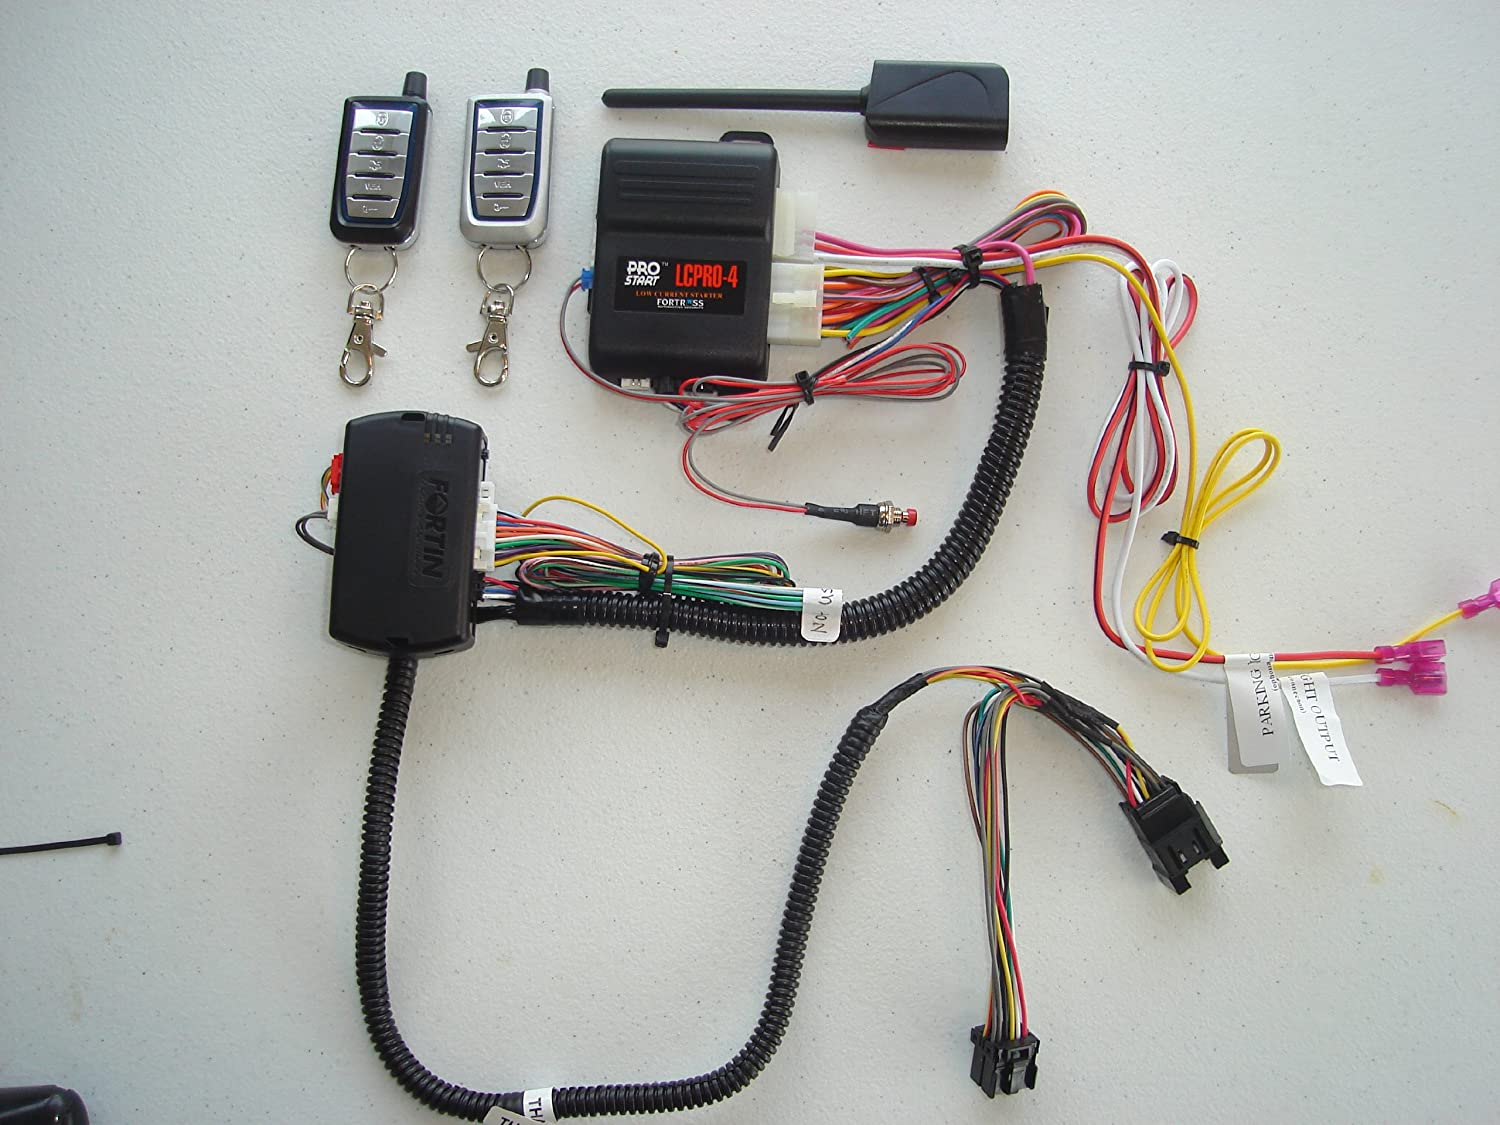 91oj4JAmP5L._SL1500_ amazon com remote starter kit w keyless entry for dodge caravan remote starter wiring harness at soozxer.org